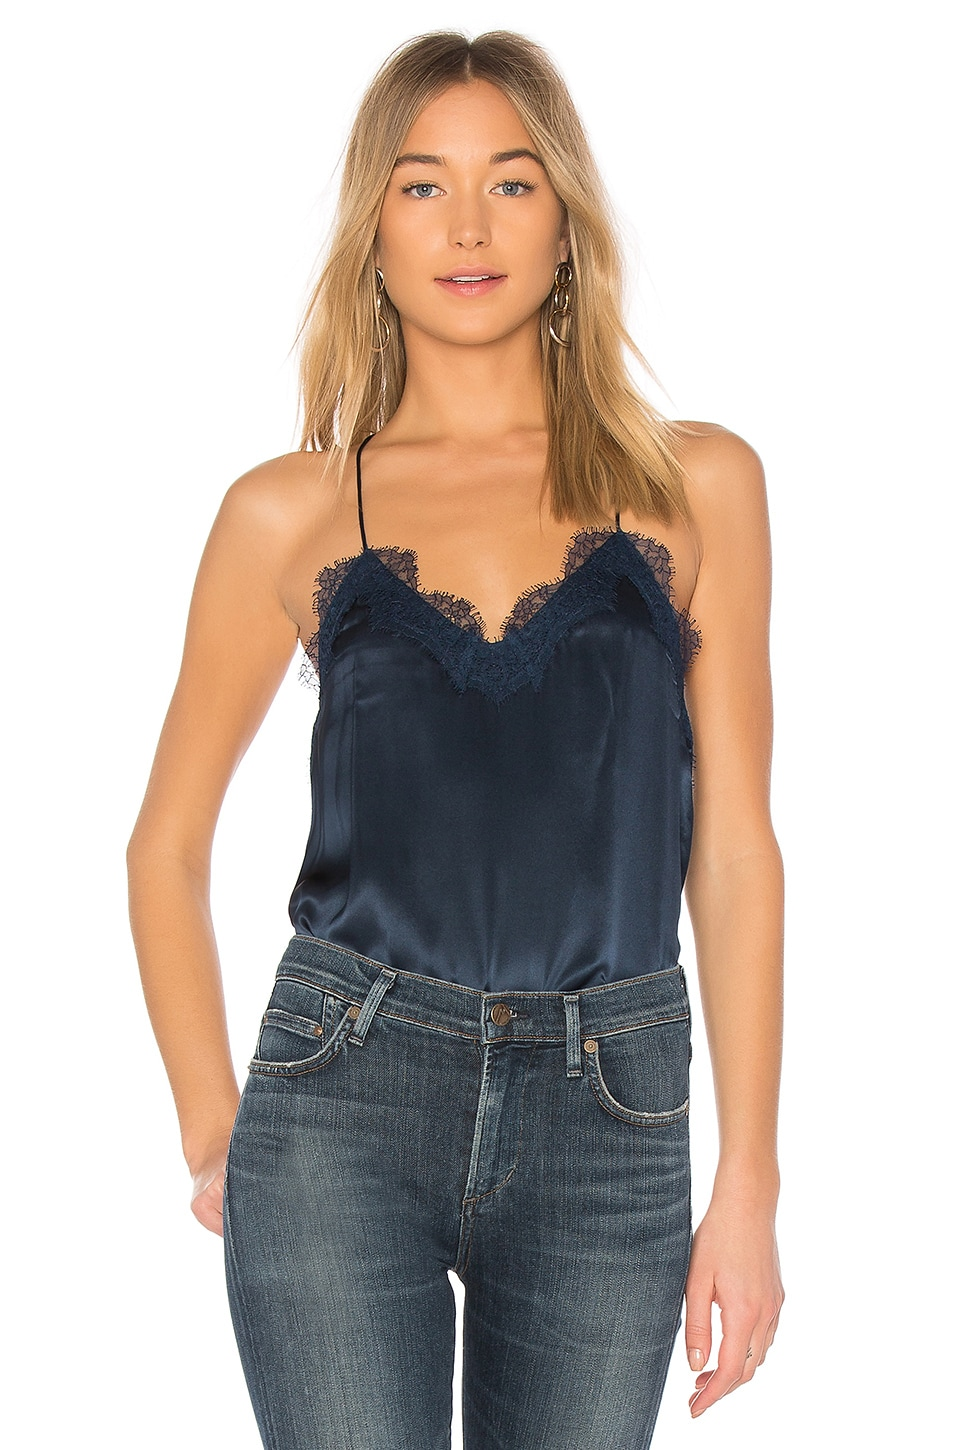 CAMI NYC The Racer Cami in Navy